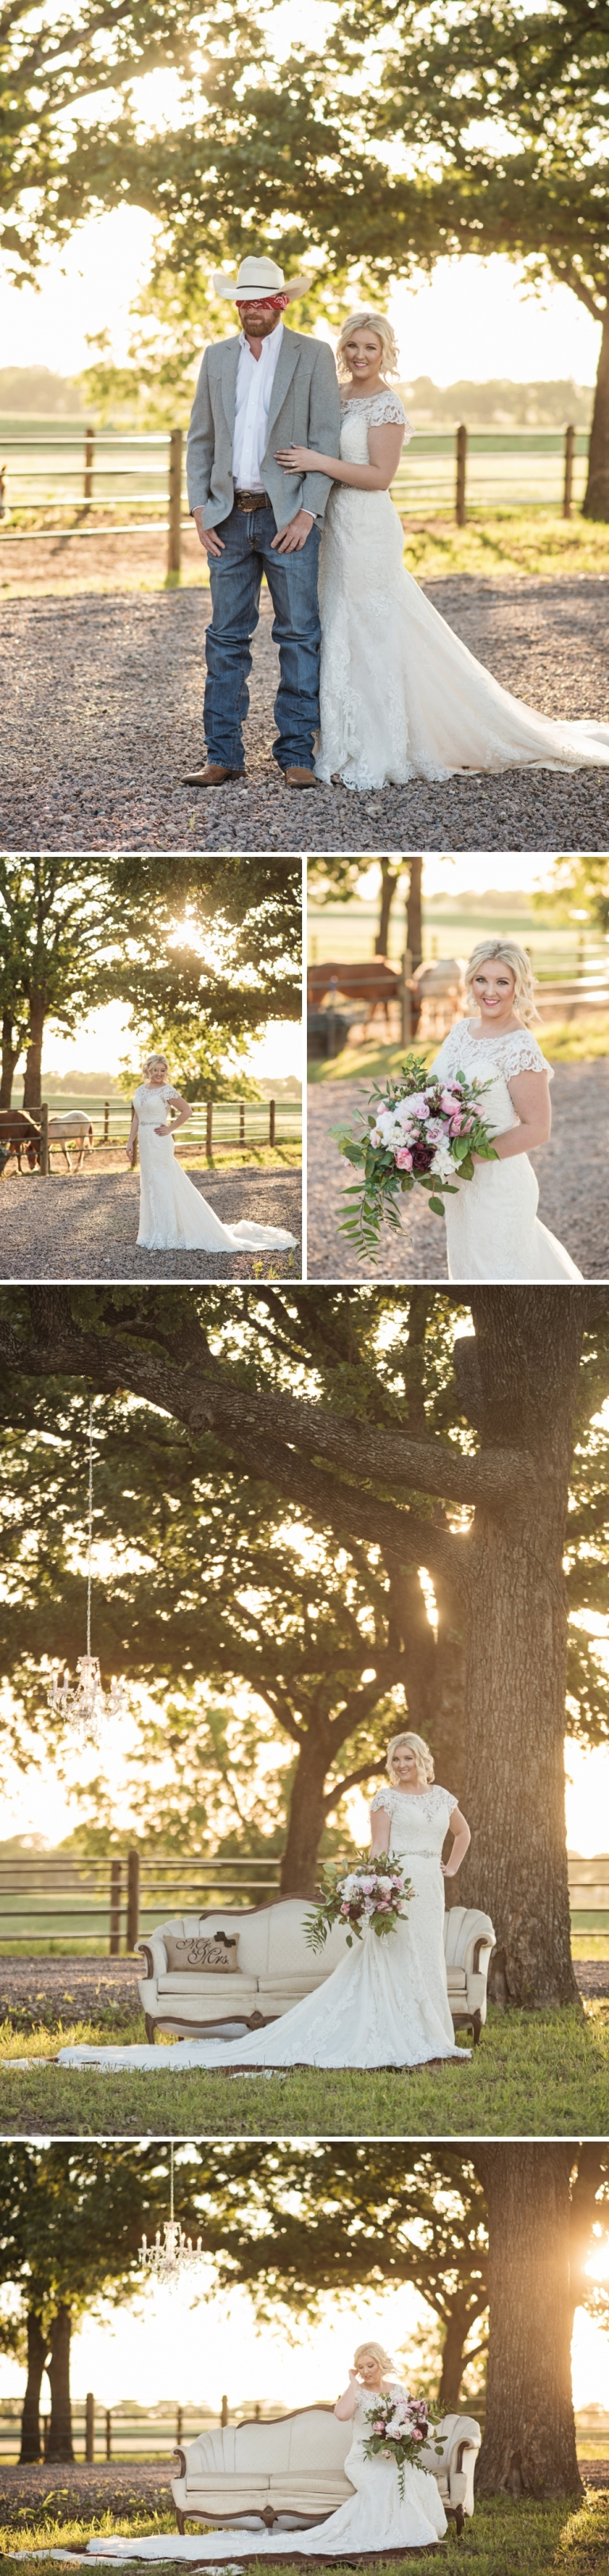 Texas Bridal Session with Tree Swing and Horse Barn